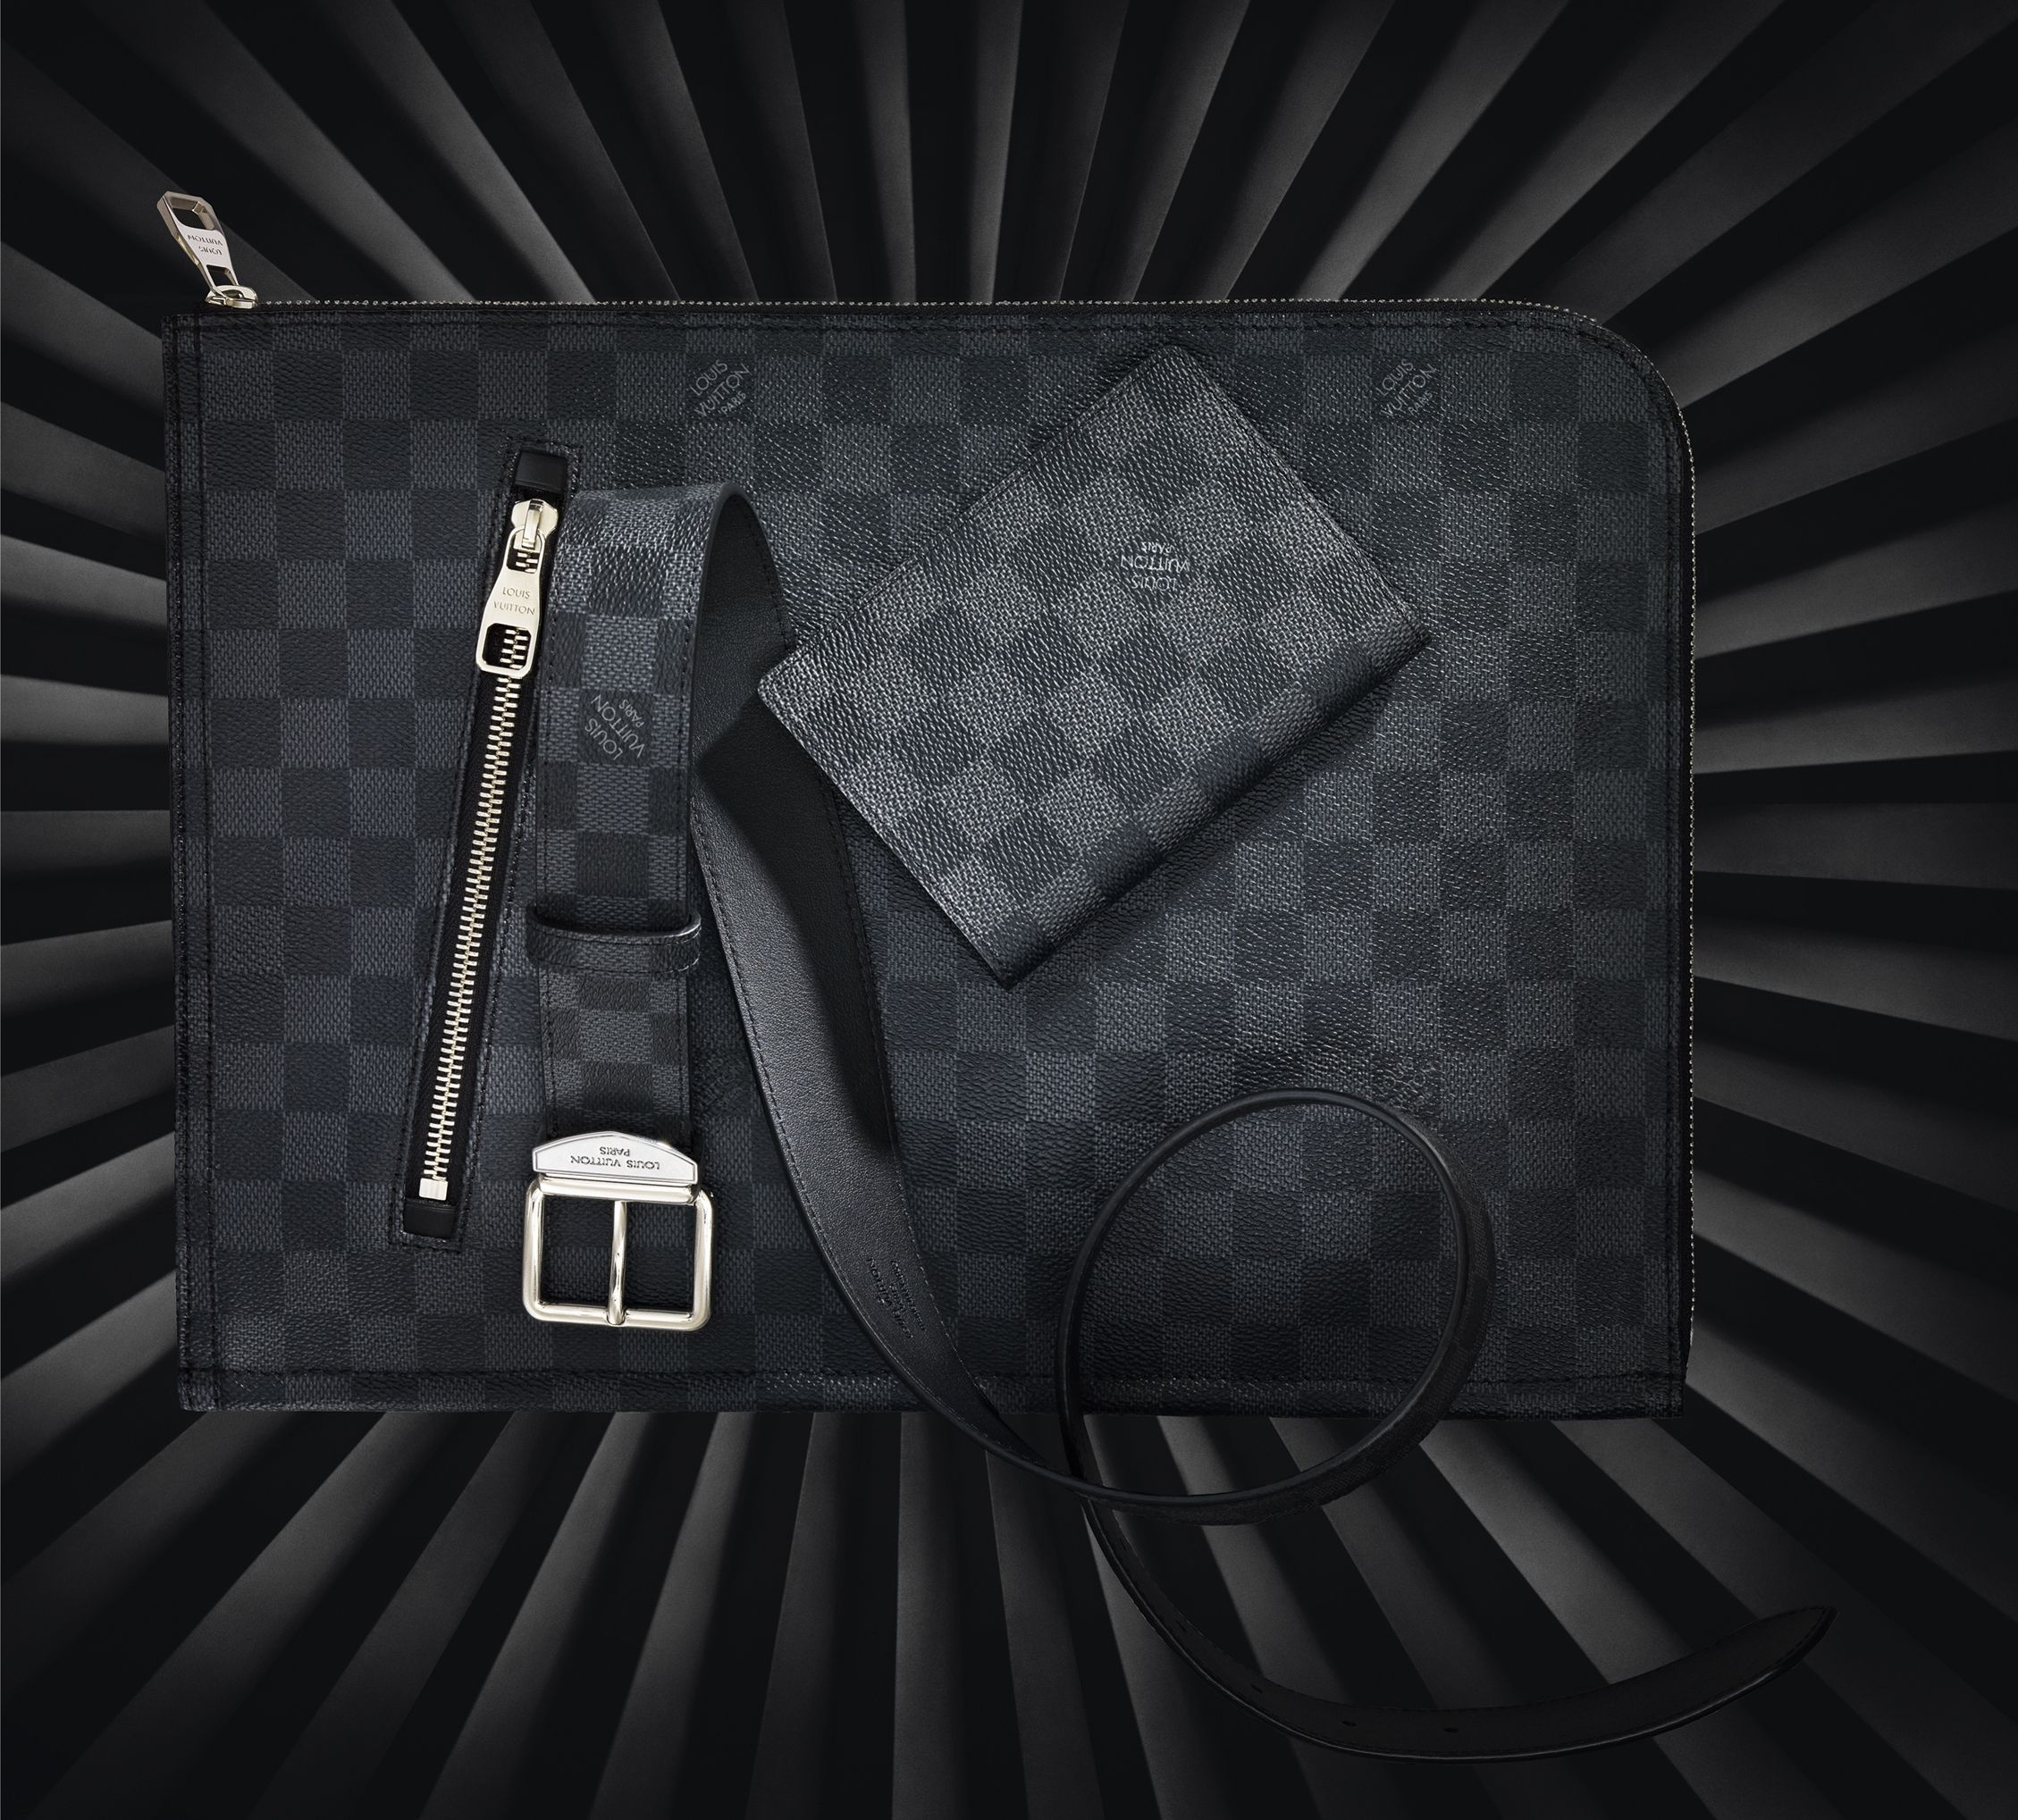 75dcf81d88a4 Luck is shining on the Louis Vuitton man this holiday season